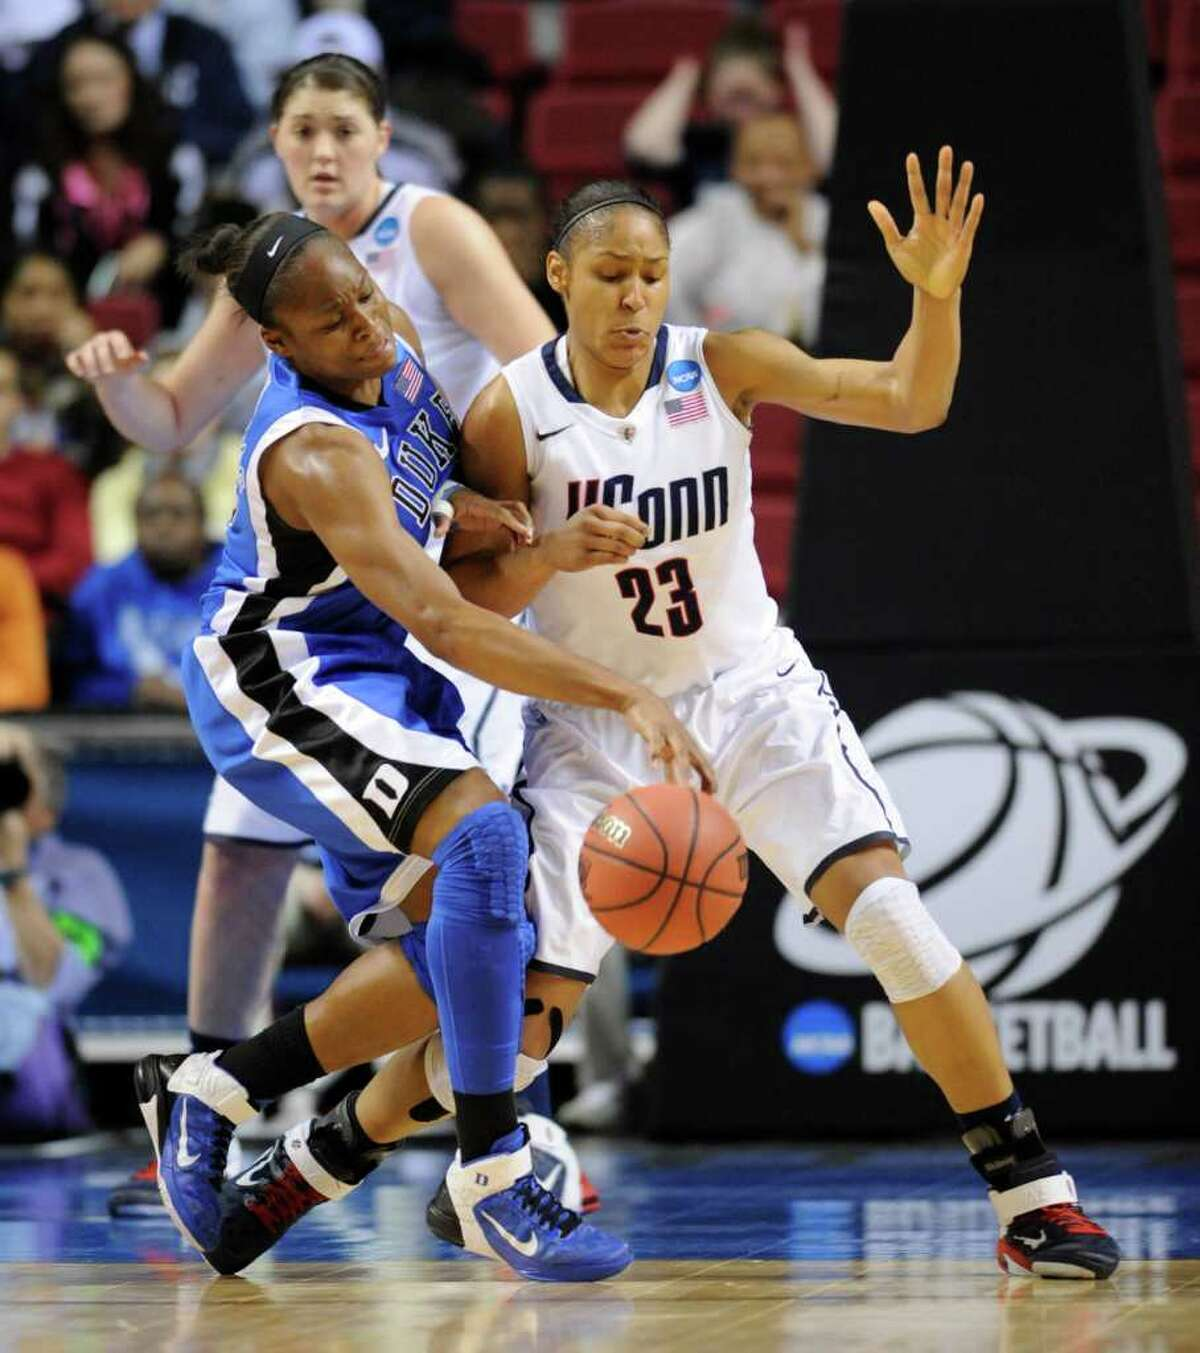 Duke's Karima Christmas, left, battles for control of the ball against Connecticut's Maya Moore (13) in the first half of an NCAA women's college basketball tournament regional final, Tuesday, March 29, 2011, in Philadelphia. (AP Photo/Barbara Johnston)